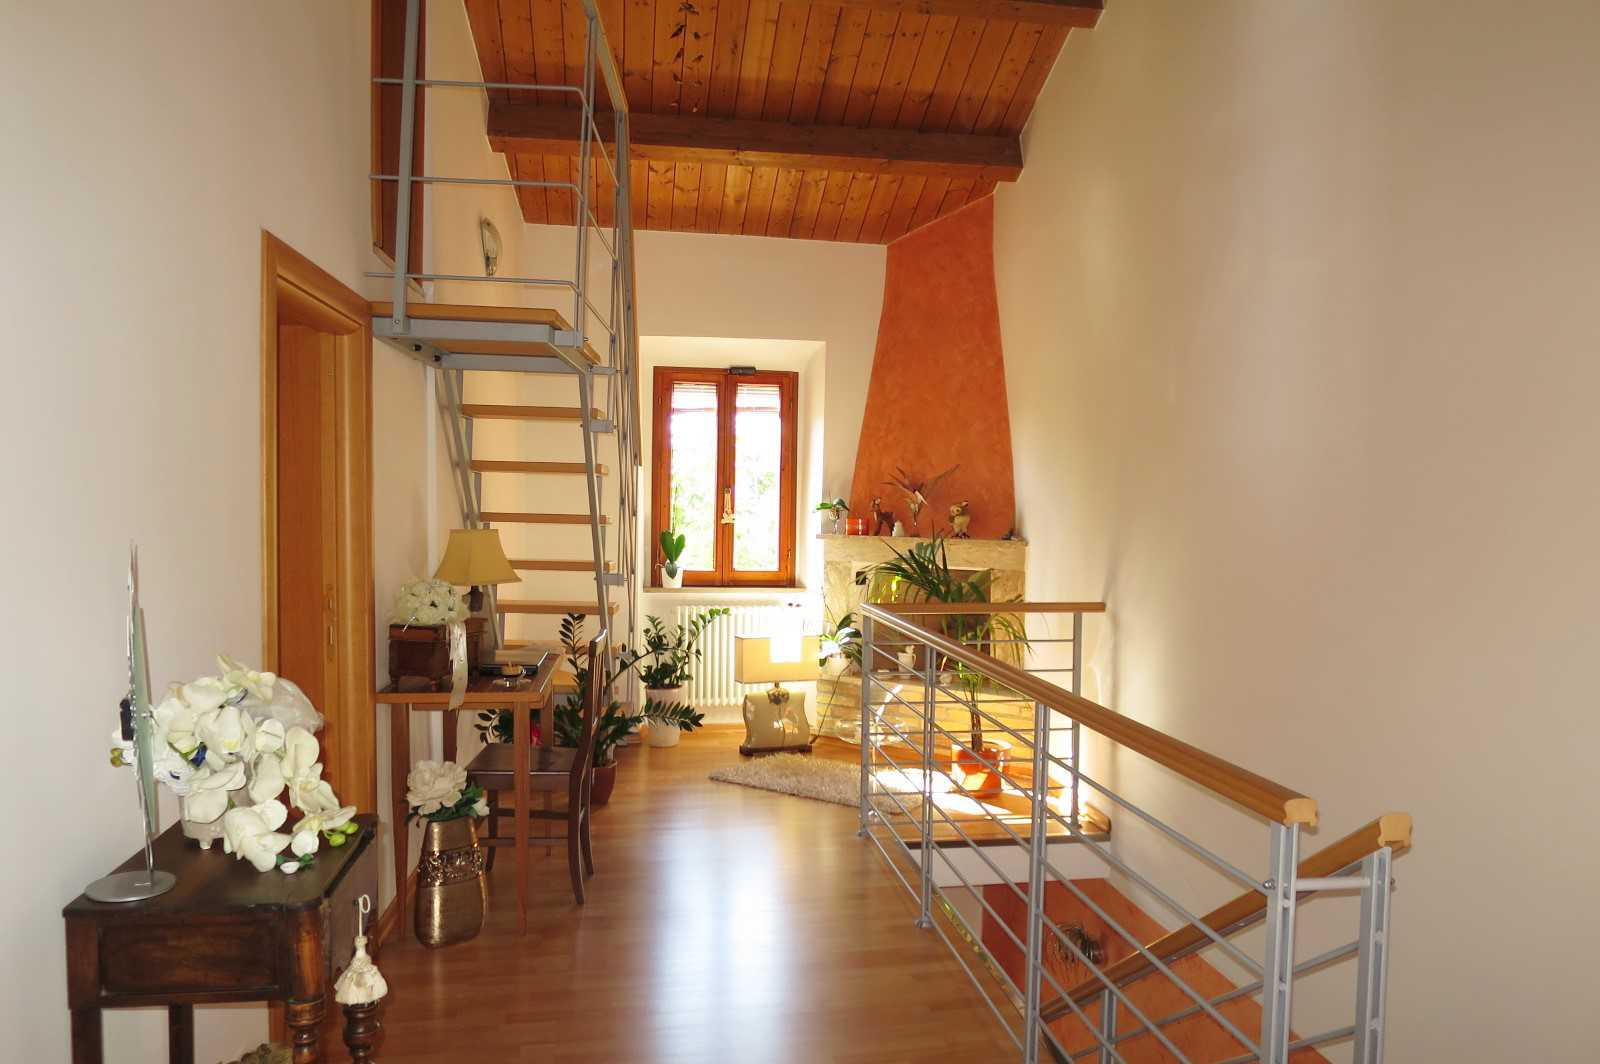 Semi-detached House Semi-detached House for sale Cermignano (TE), Casa Gualtieri - Cermignano - EUR 201.814 160